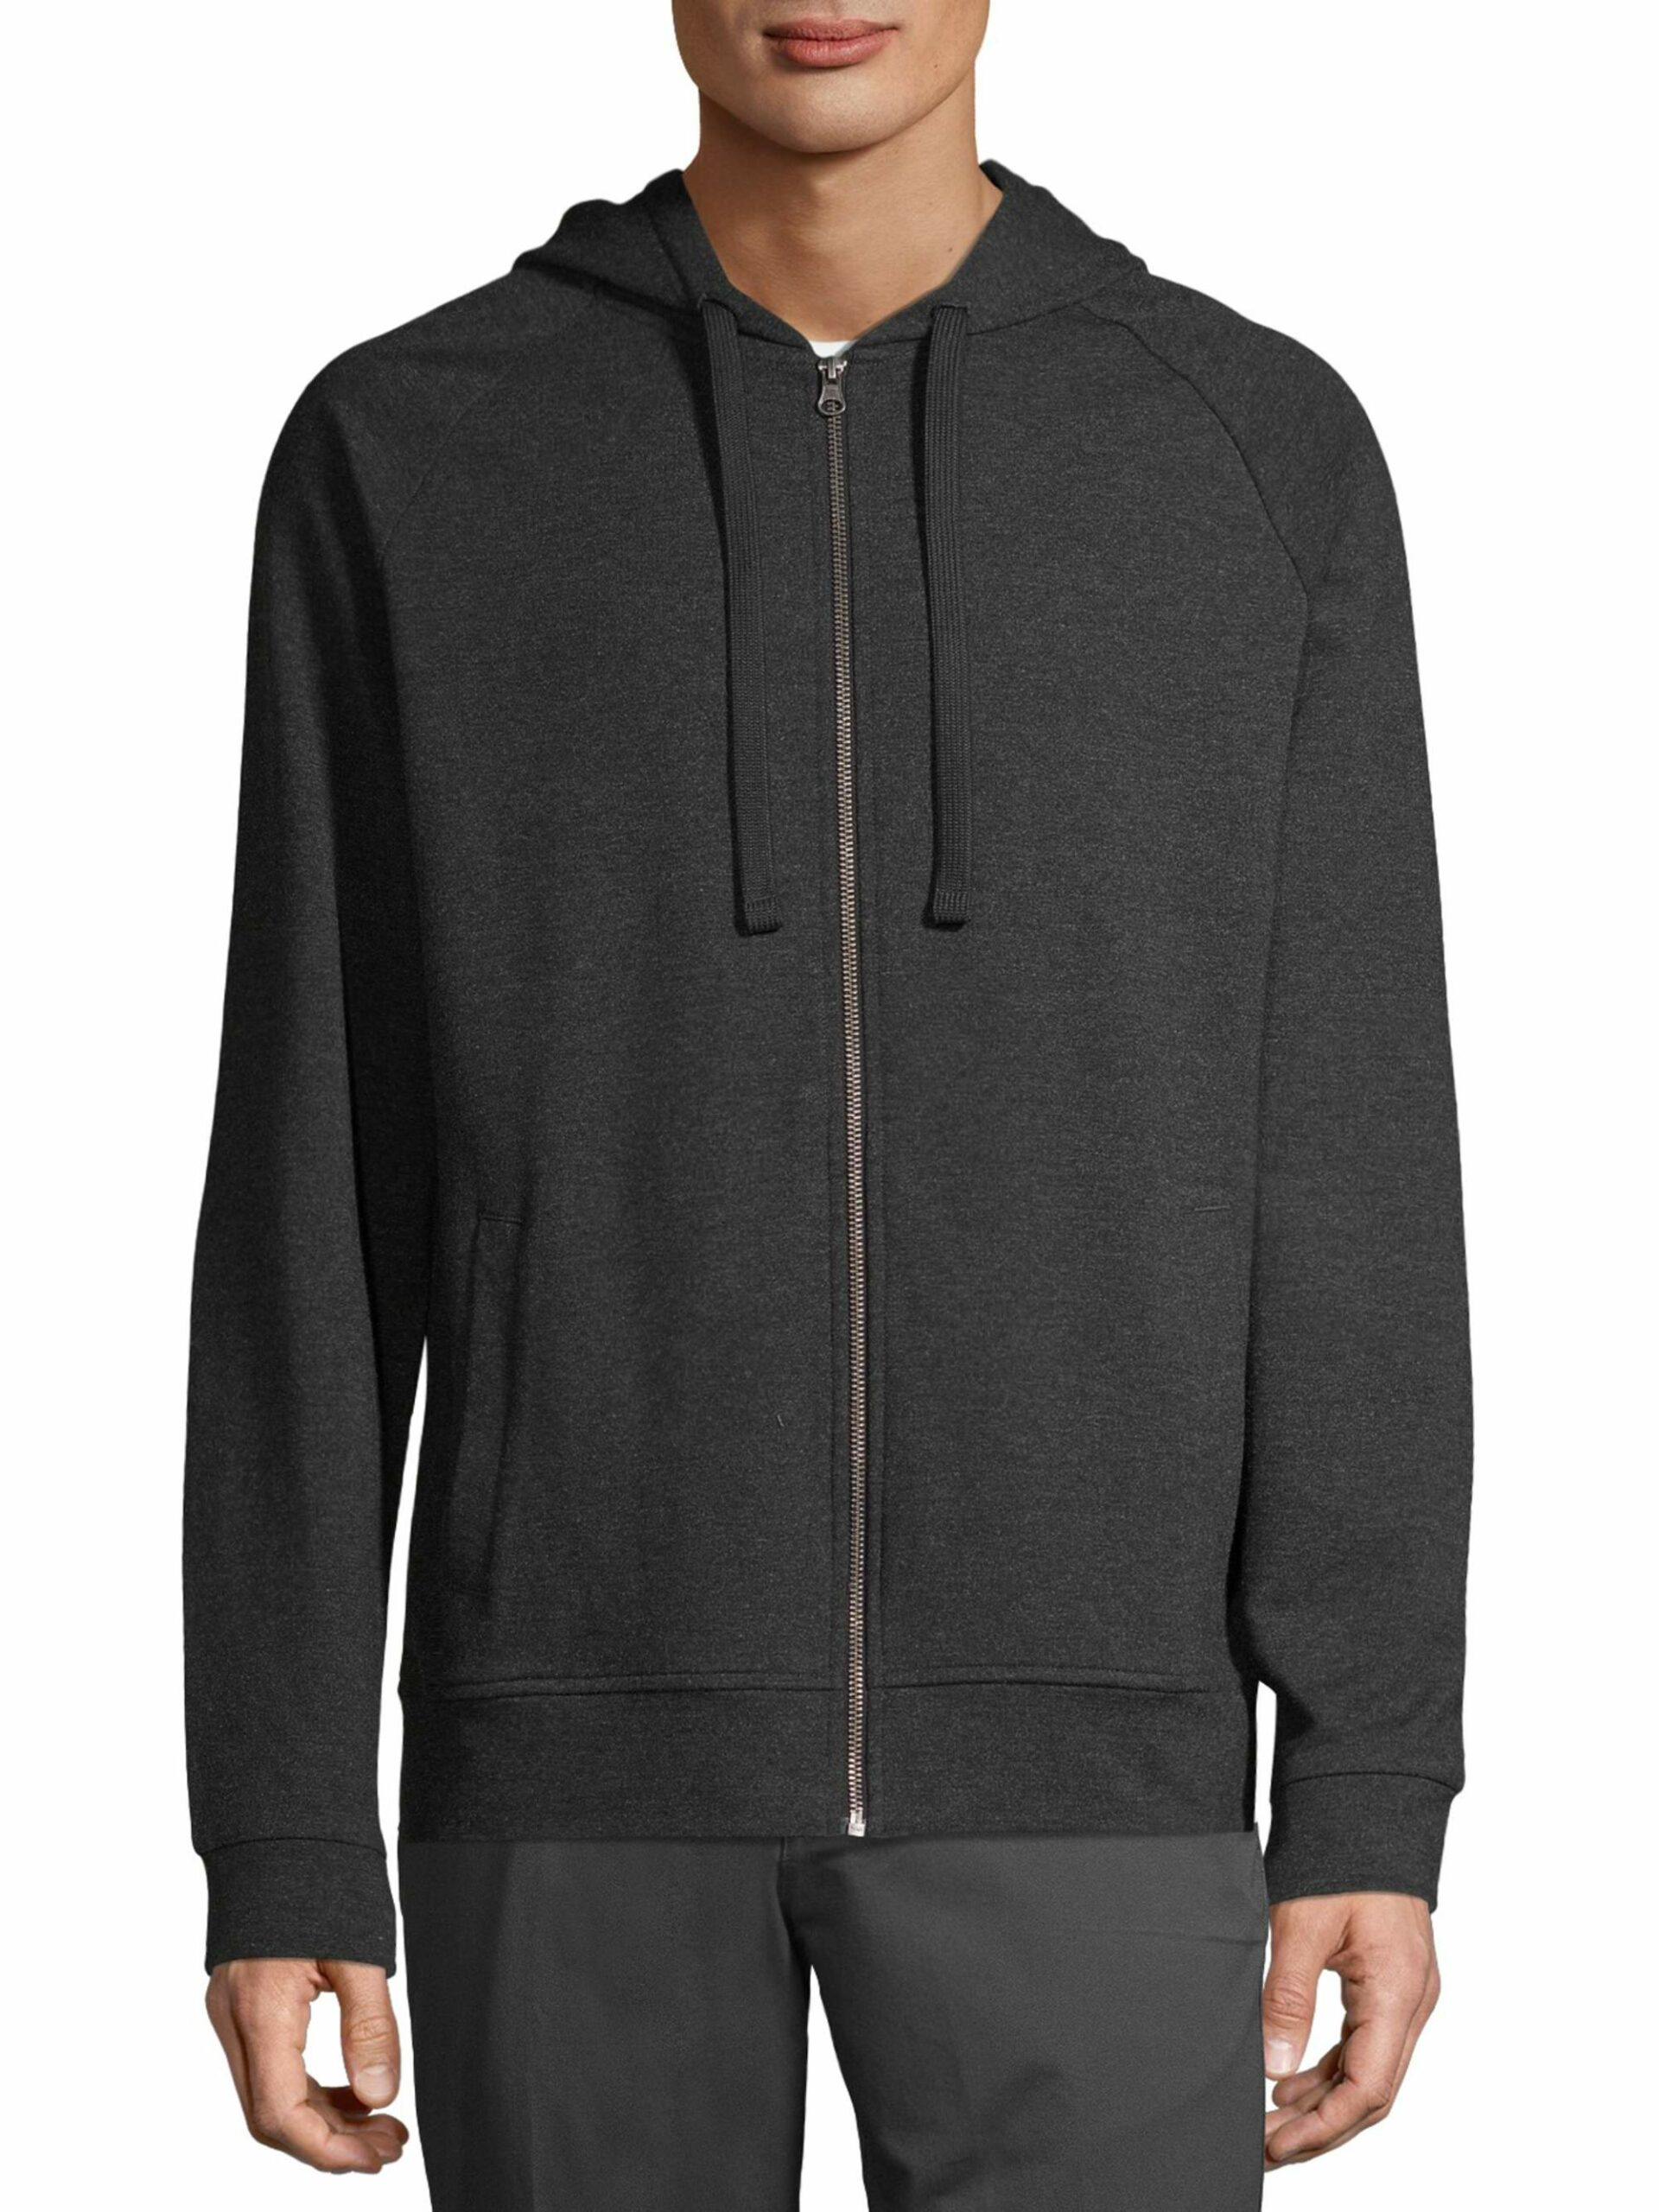 George Men's and Big Men's Fashion Full Zip Hoodie Black Soot Heather, up to Size S/CH 34-36